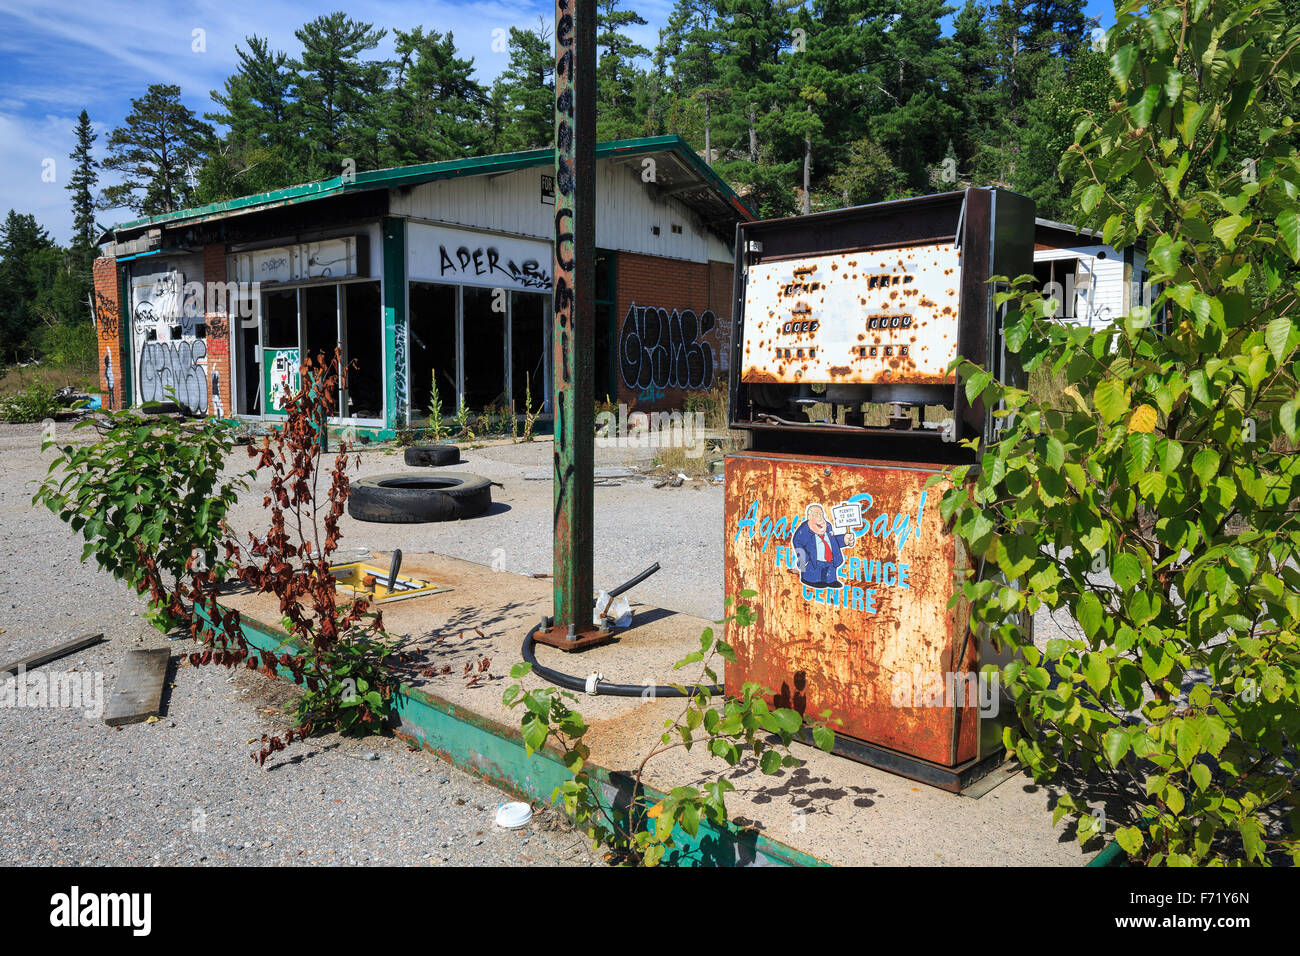 Abandoned gas station, Northwestern Ontario, Canada - Stock Image